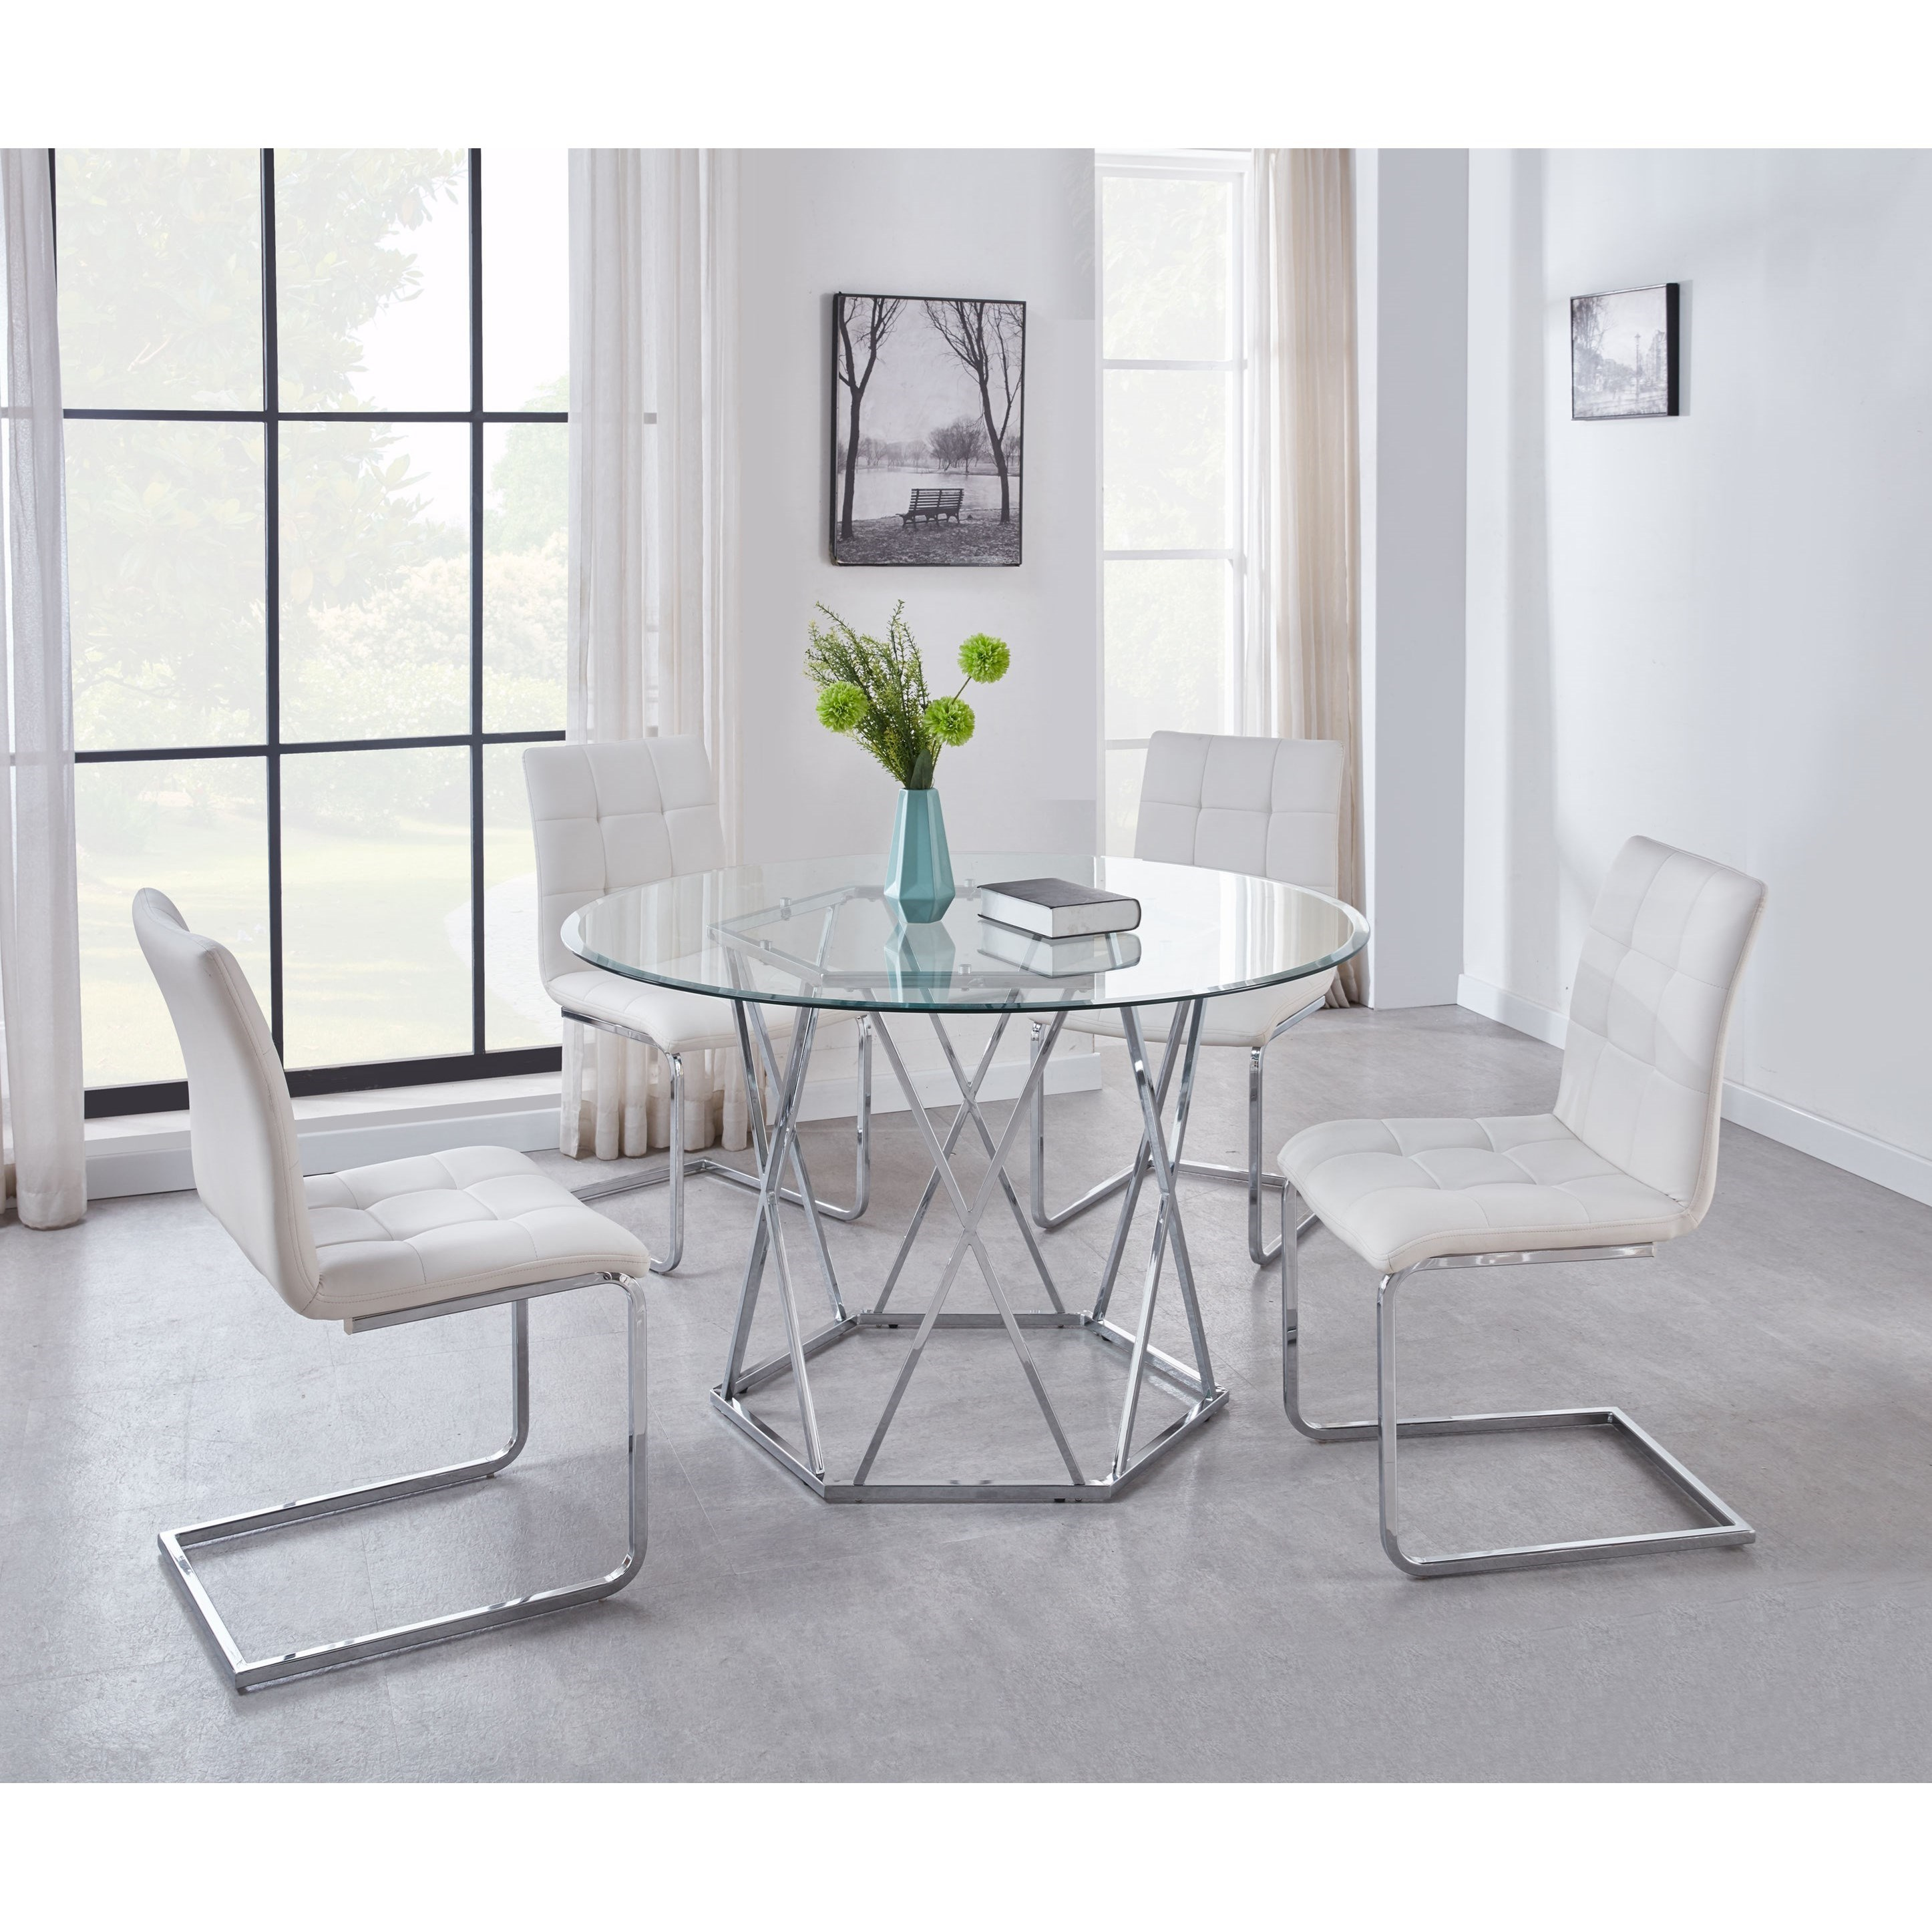 Kendrick 5-Piece Table and Chair Set at Rotmans